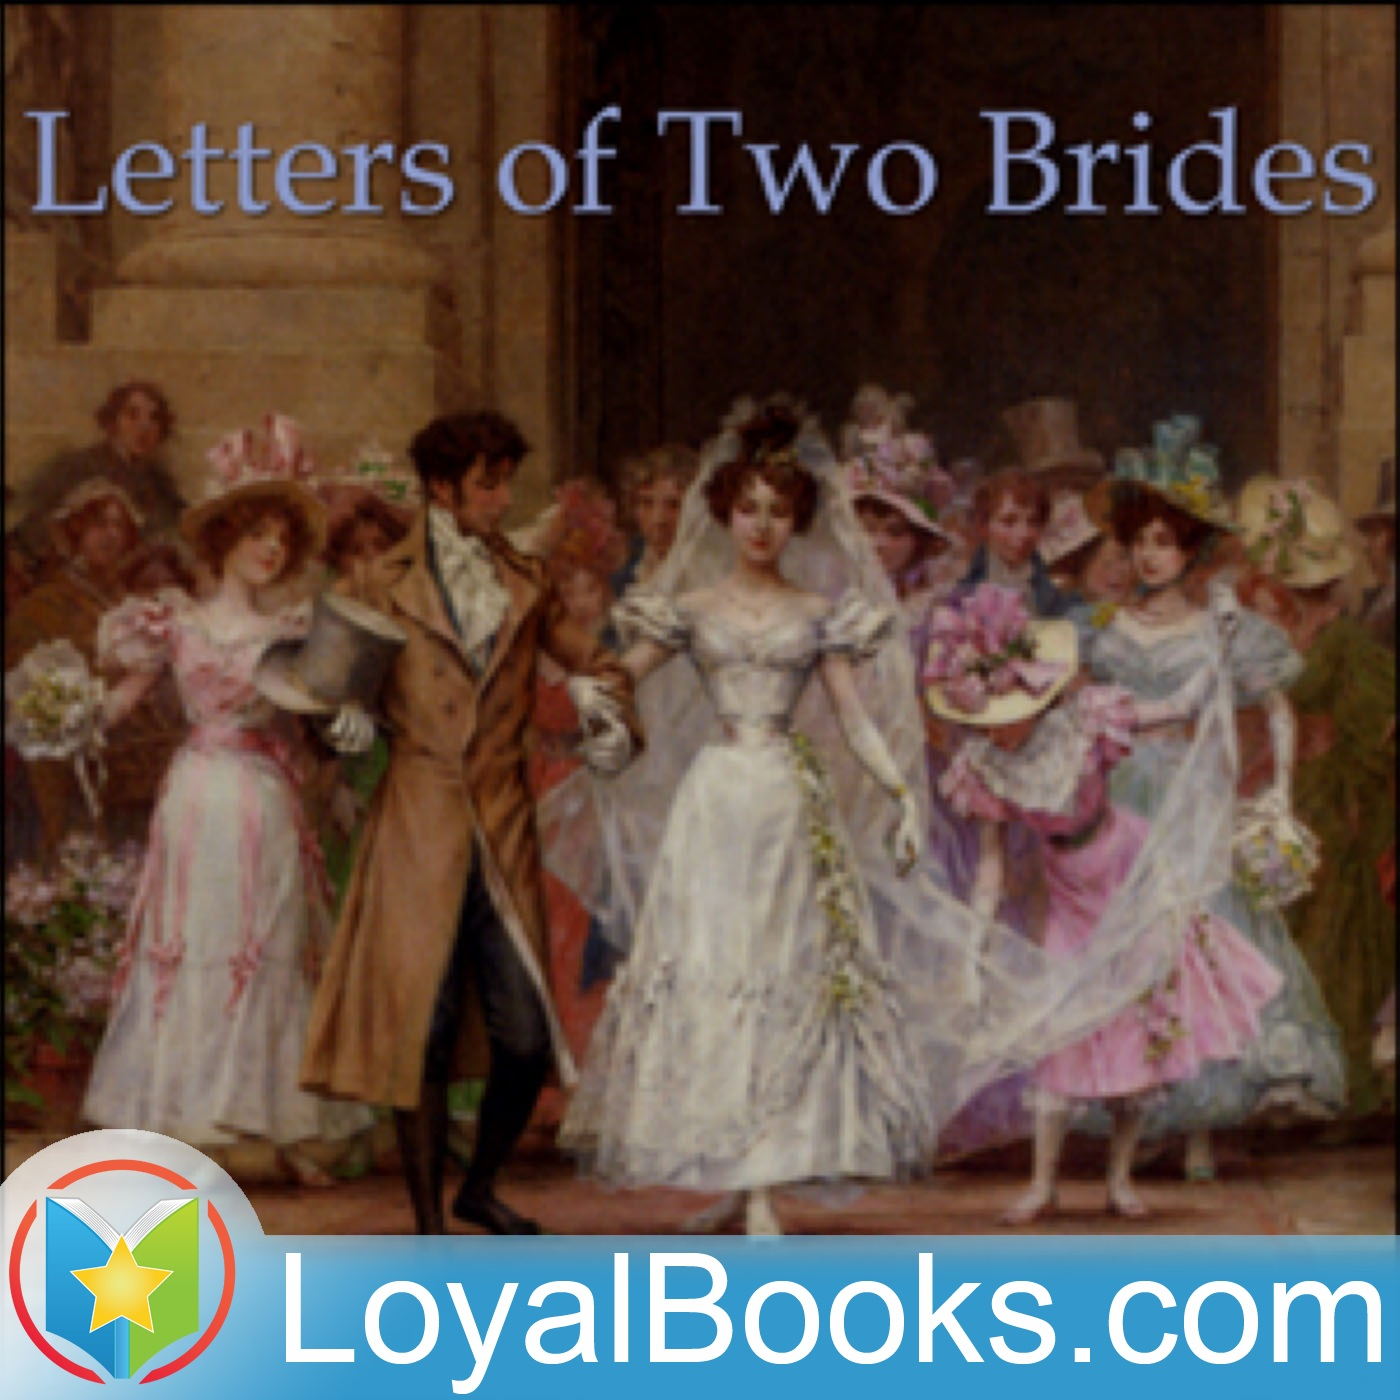 <![CDATA[Letters of Two Brides by Honore de Balzac]]>